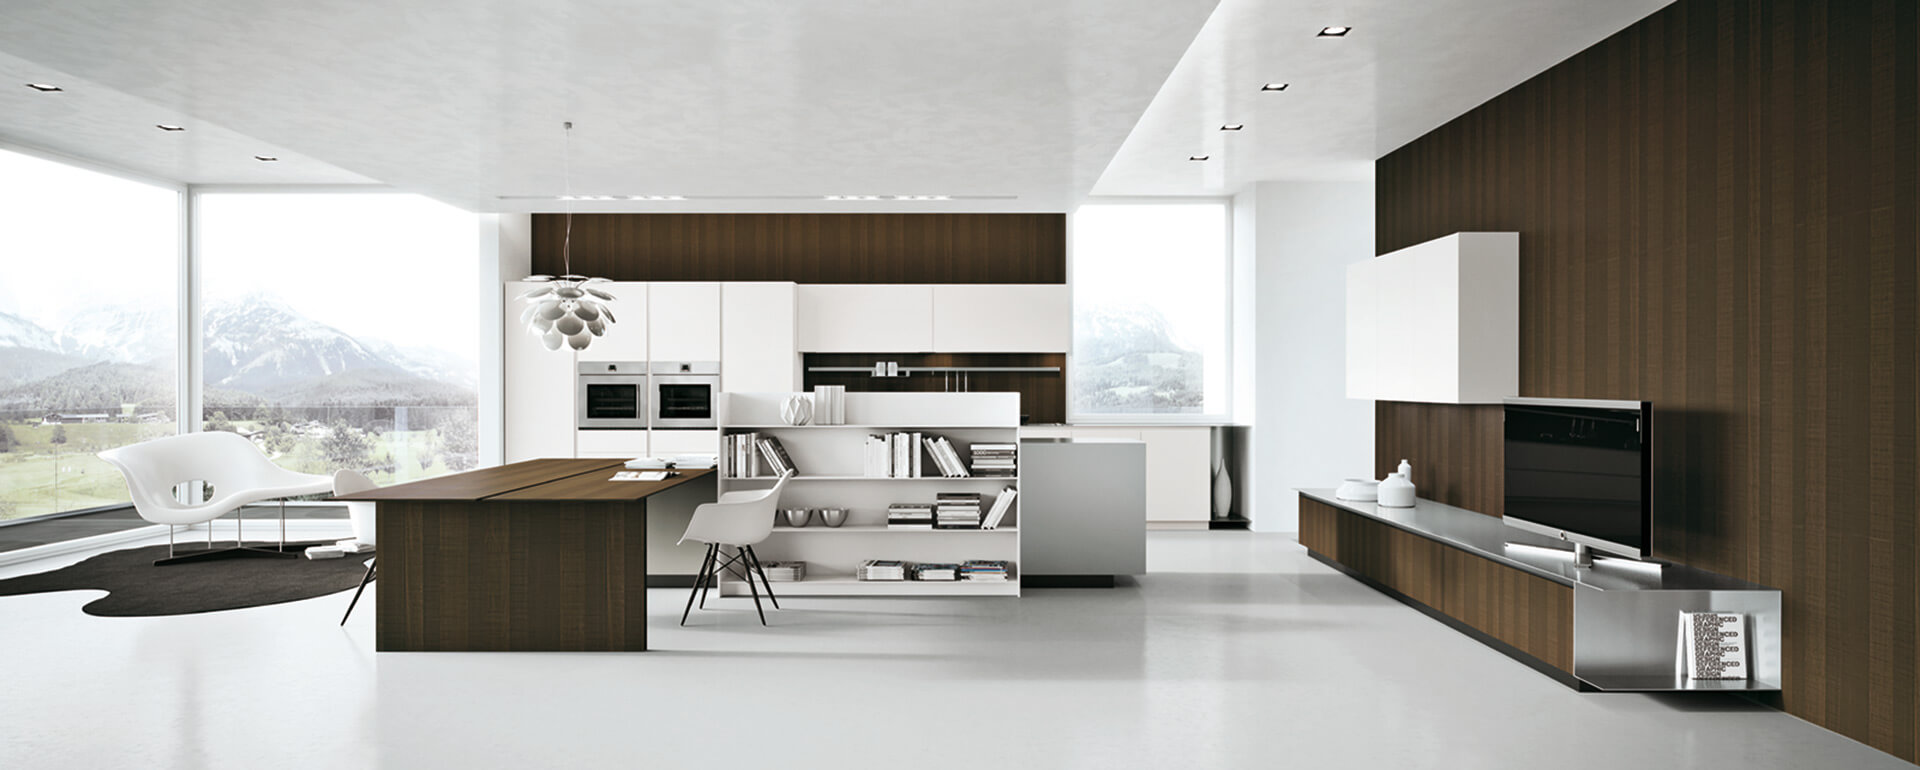 small cabinets for living room ak 04 cucine moderne design italiano arrital 20416